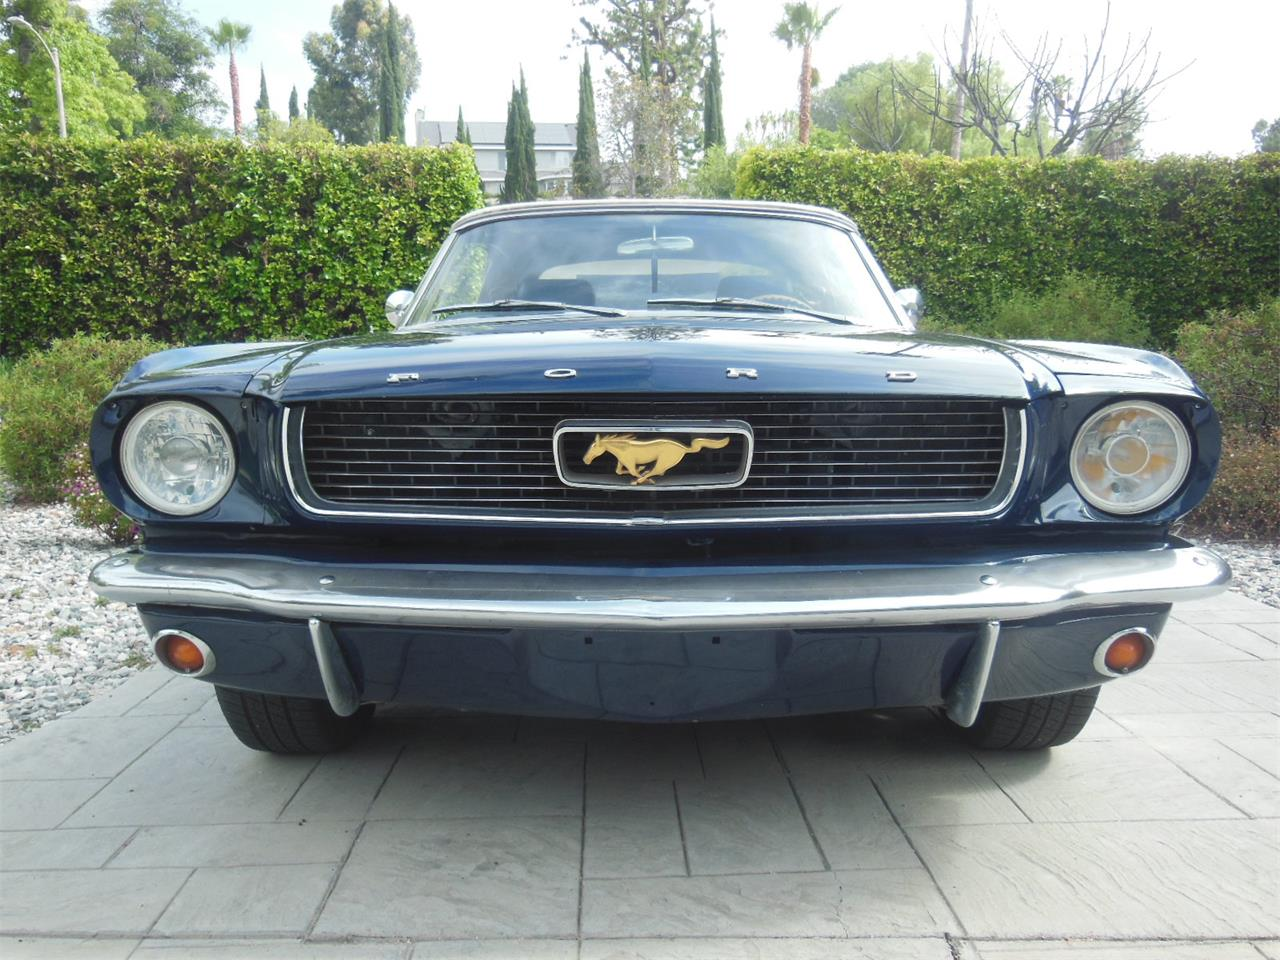 Large Picture of '66 Mustang - $19,900.00 Offered by a Private Seller - QEXU